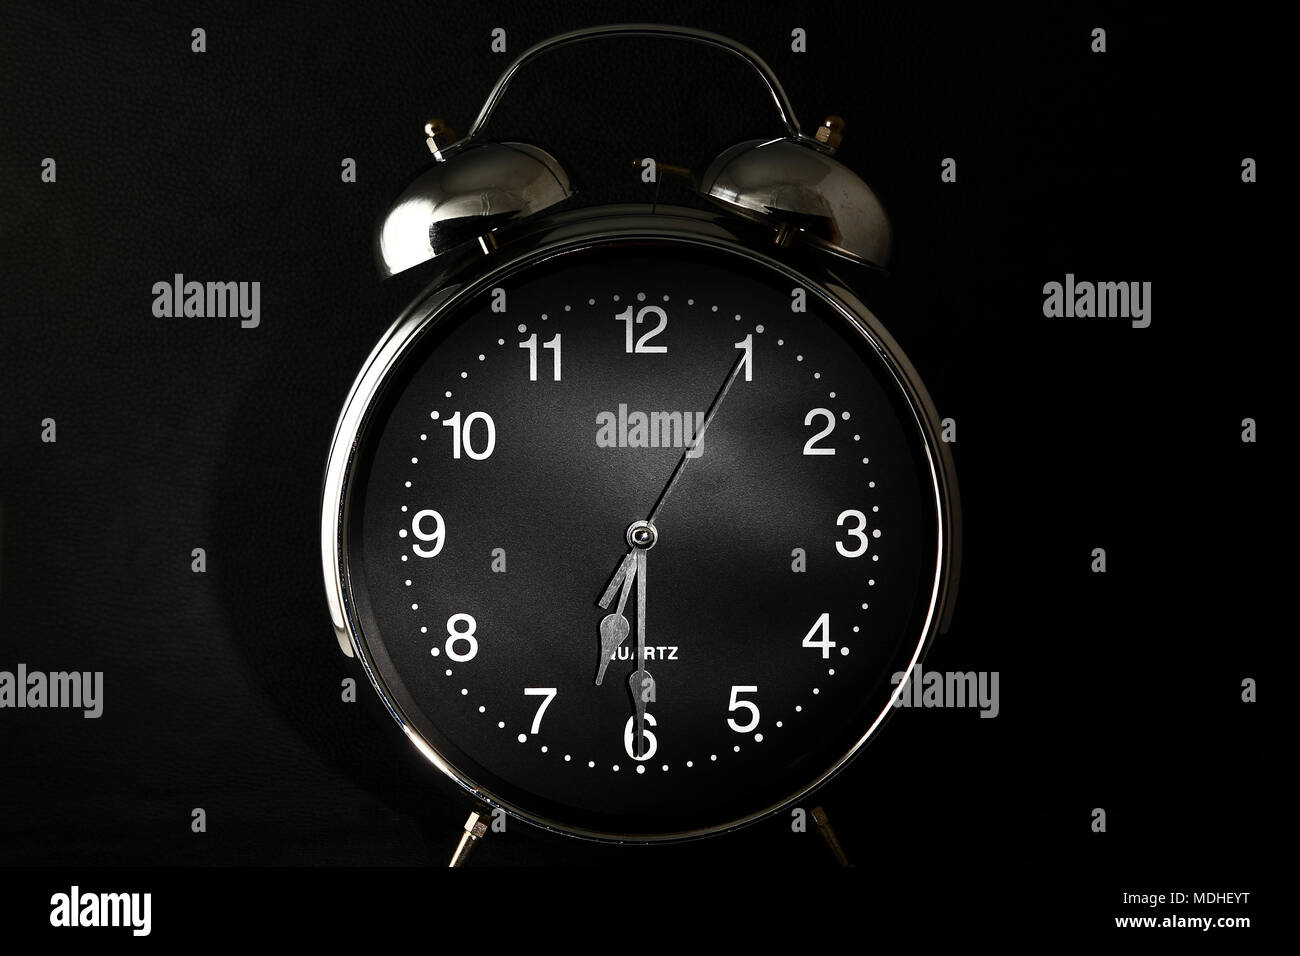 Old retro alarm clock with the hands set to 6:30 am or pm - Stock Image